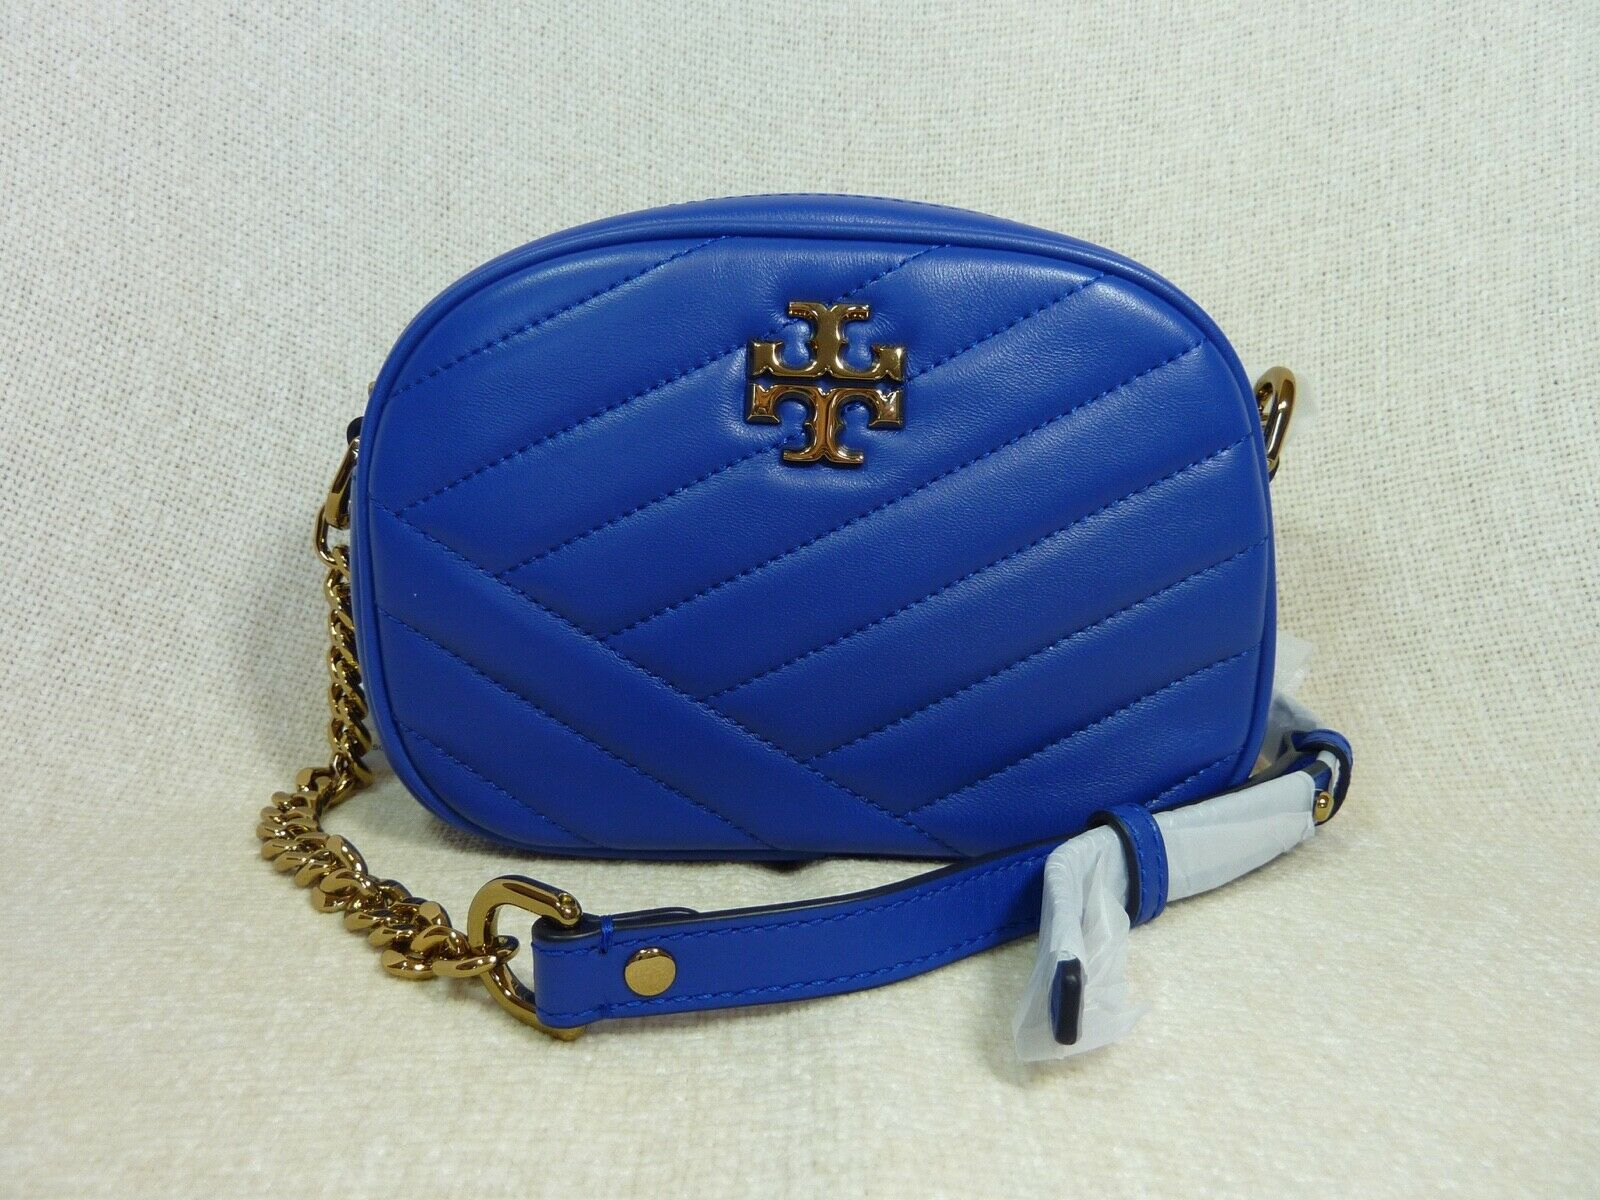 NWT Tory Burch Nautical Blue Kira Chevron Small Camera Bag $358